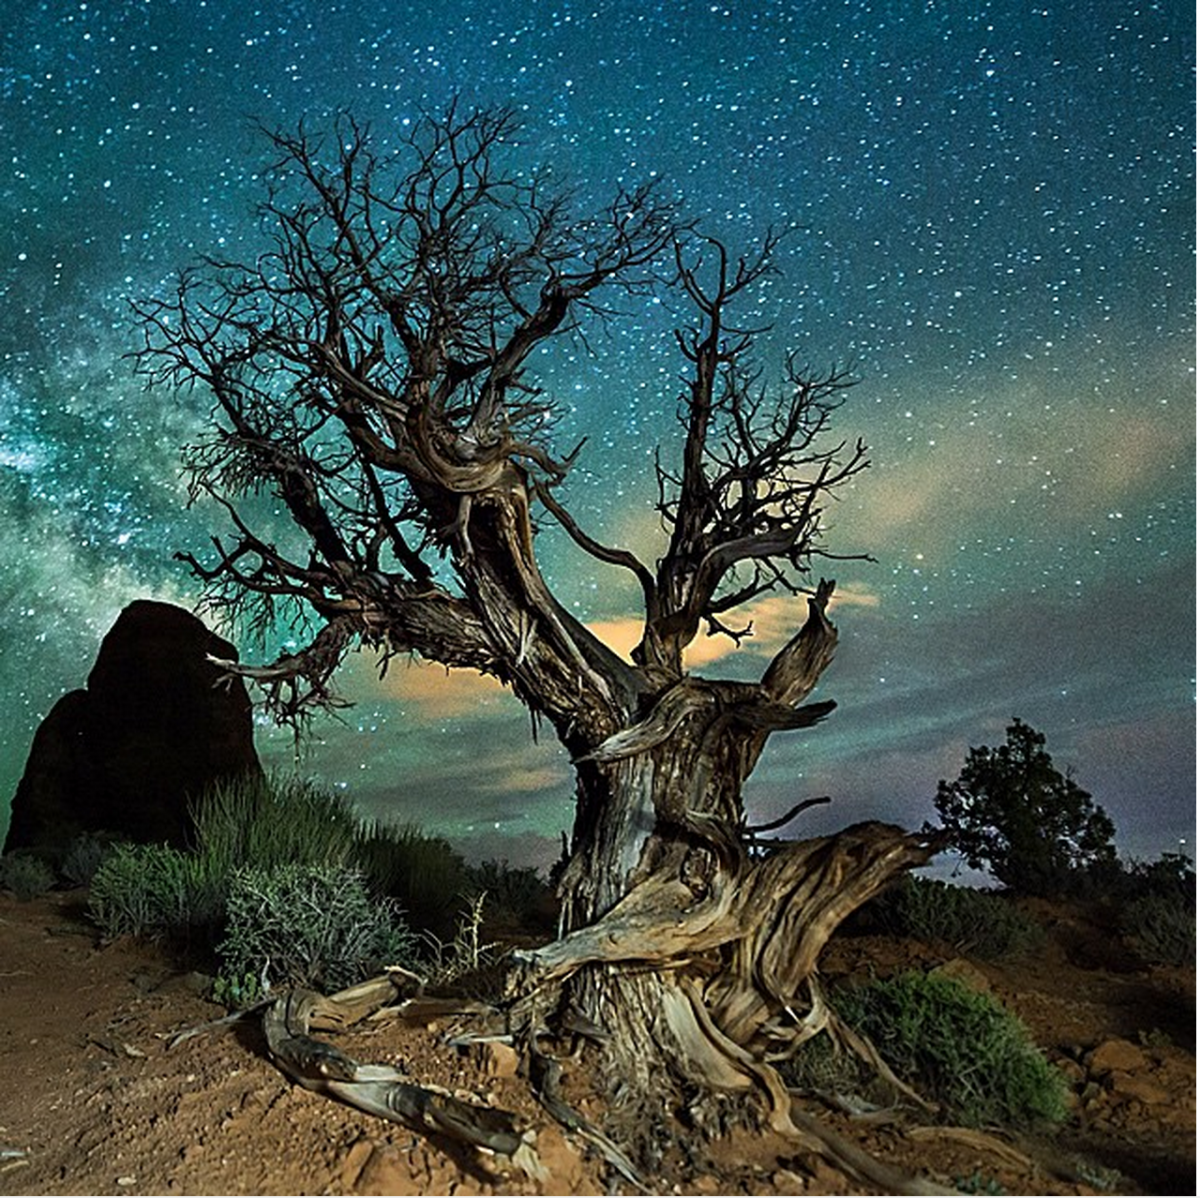 Congratulations To Our Mentor Series Travel Photo Contest Winner, Stephen Ippolito